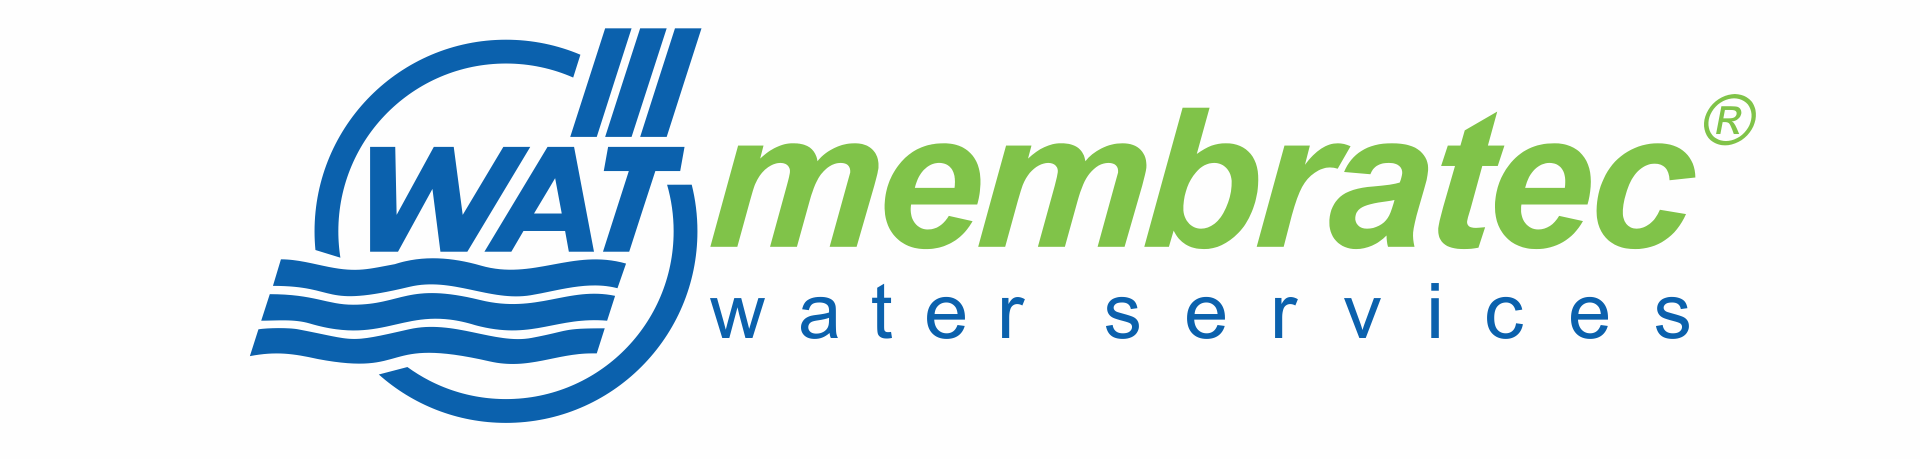 WAT-membratec water services